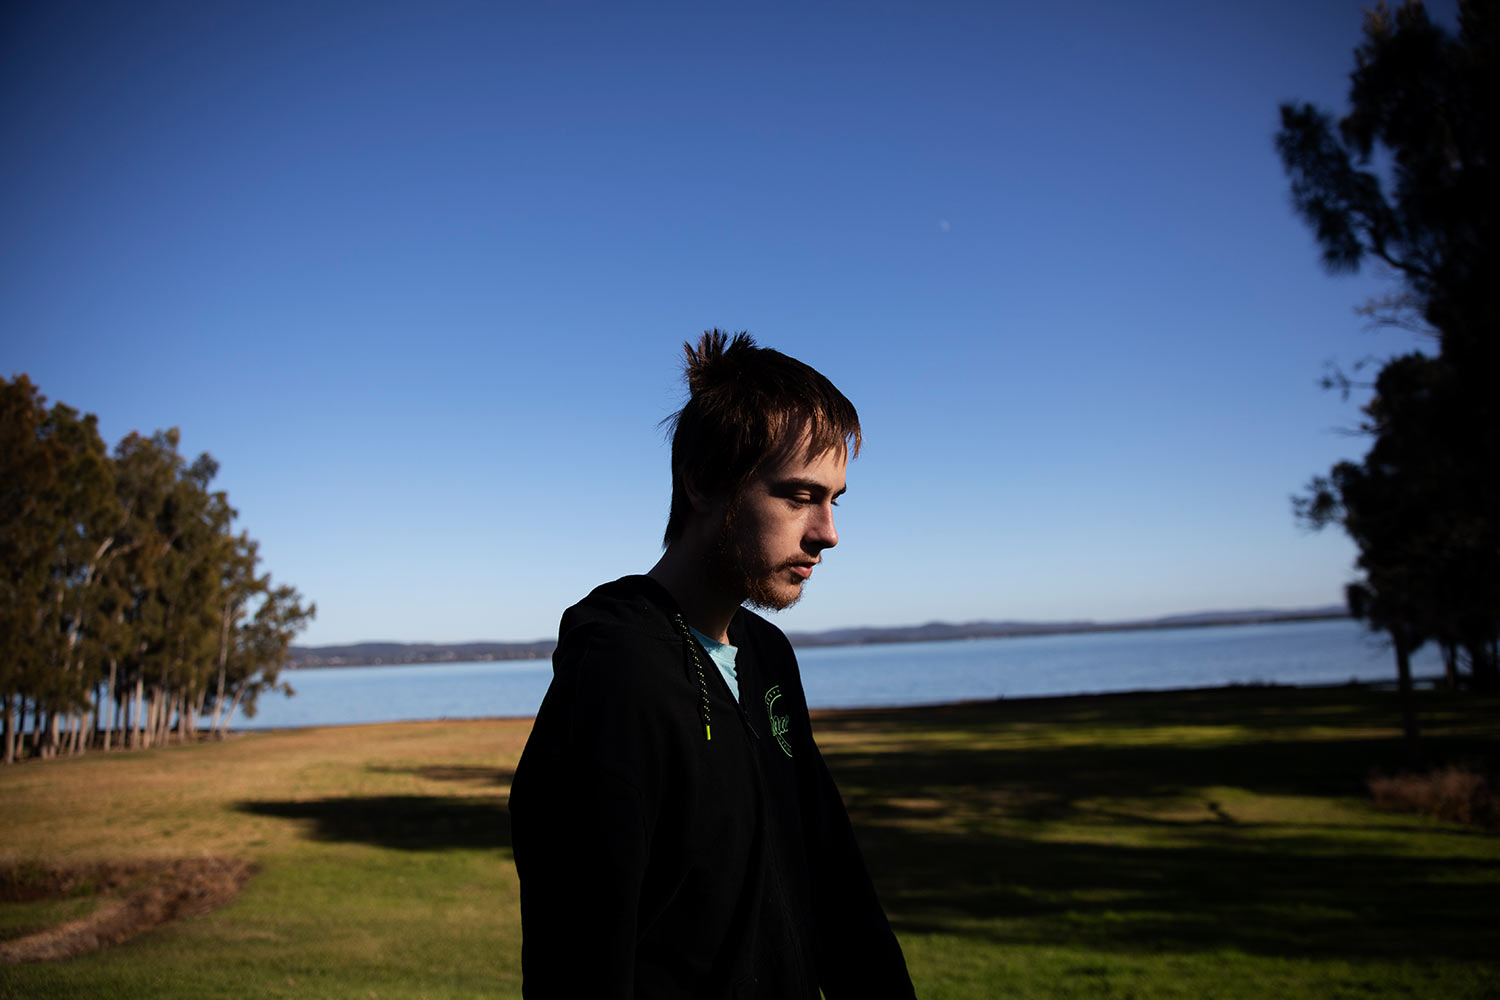 Sam Ware is shown while out on a morning walk from the hostel where he is staying at The Entrance, Central Coast, Australia, Thursday, July 25, 2019. (AP Photo/David Goldman)